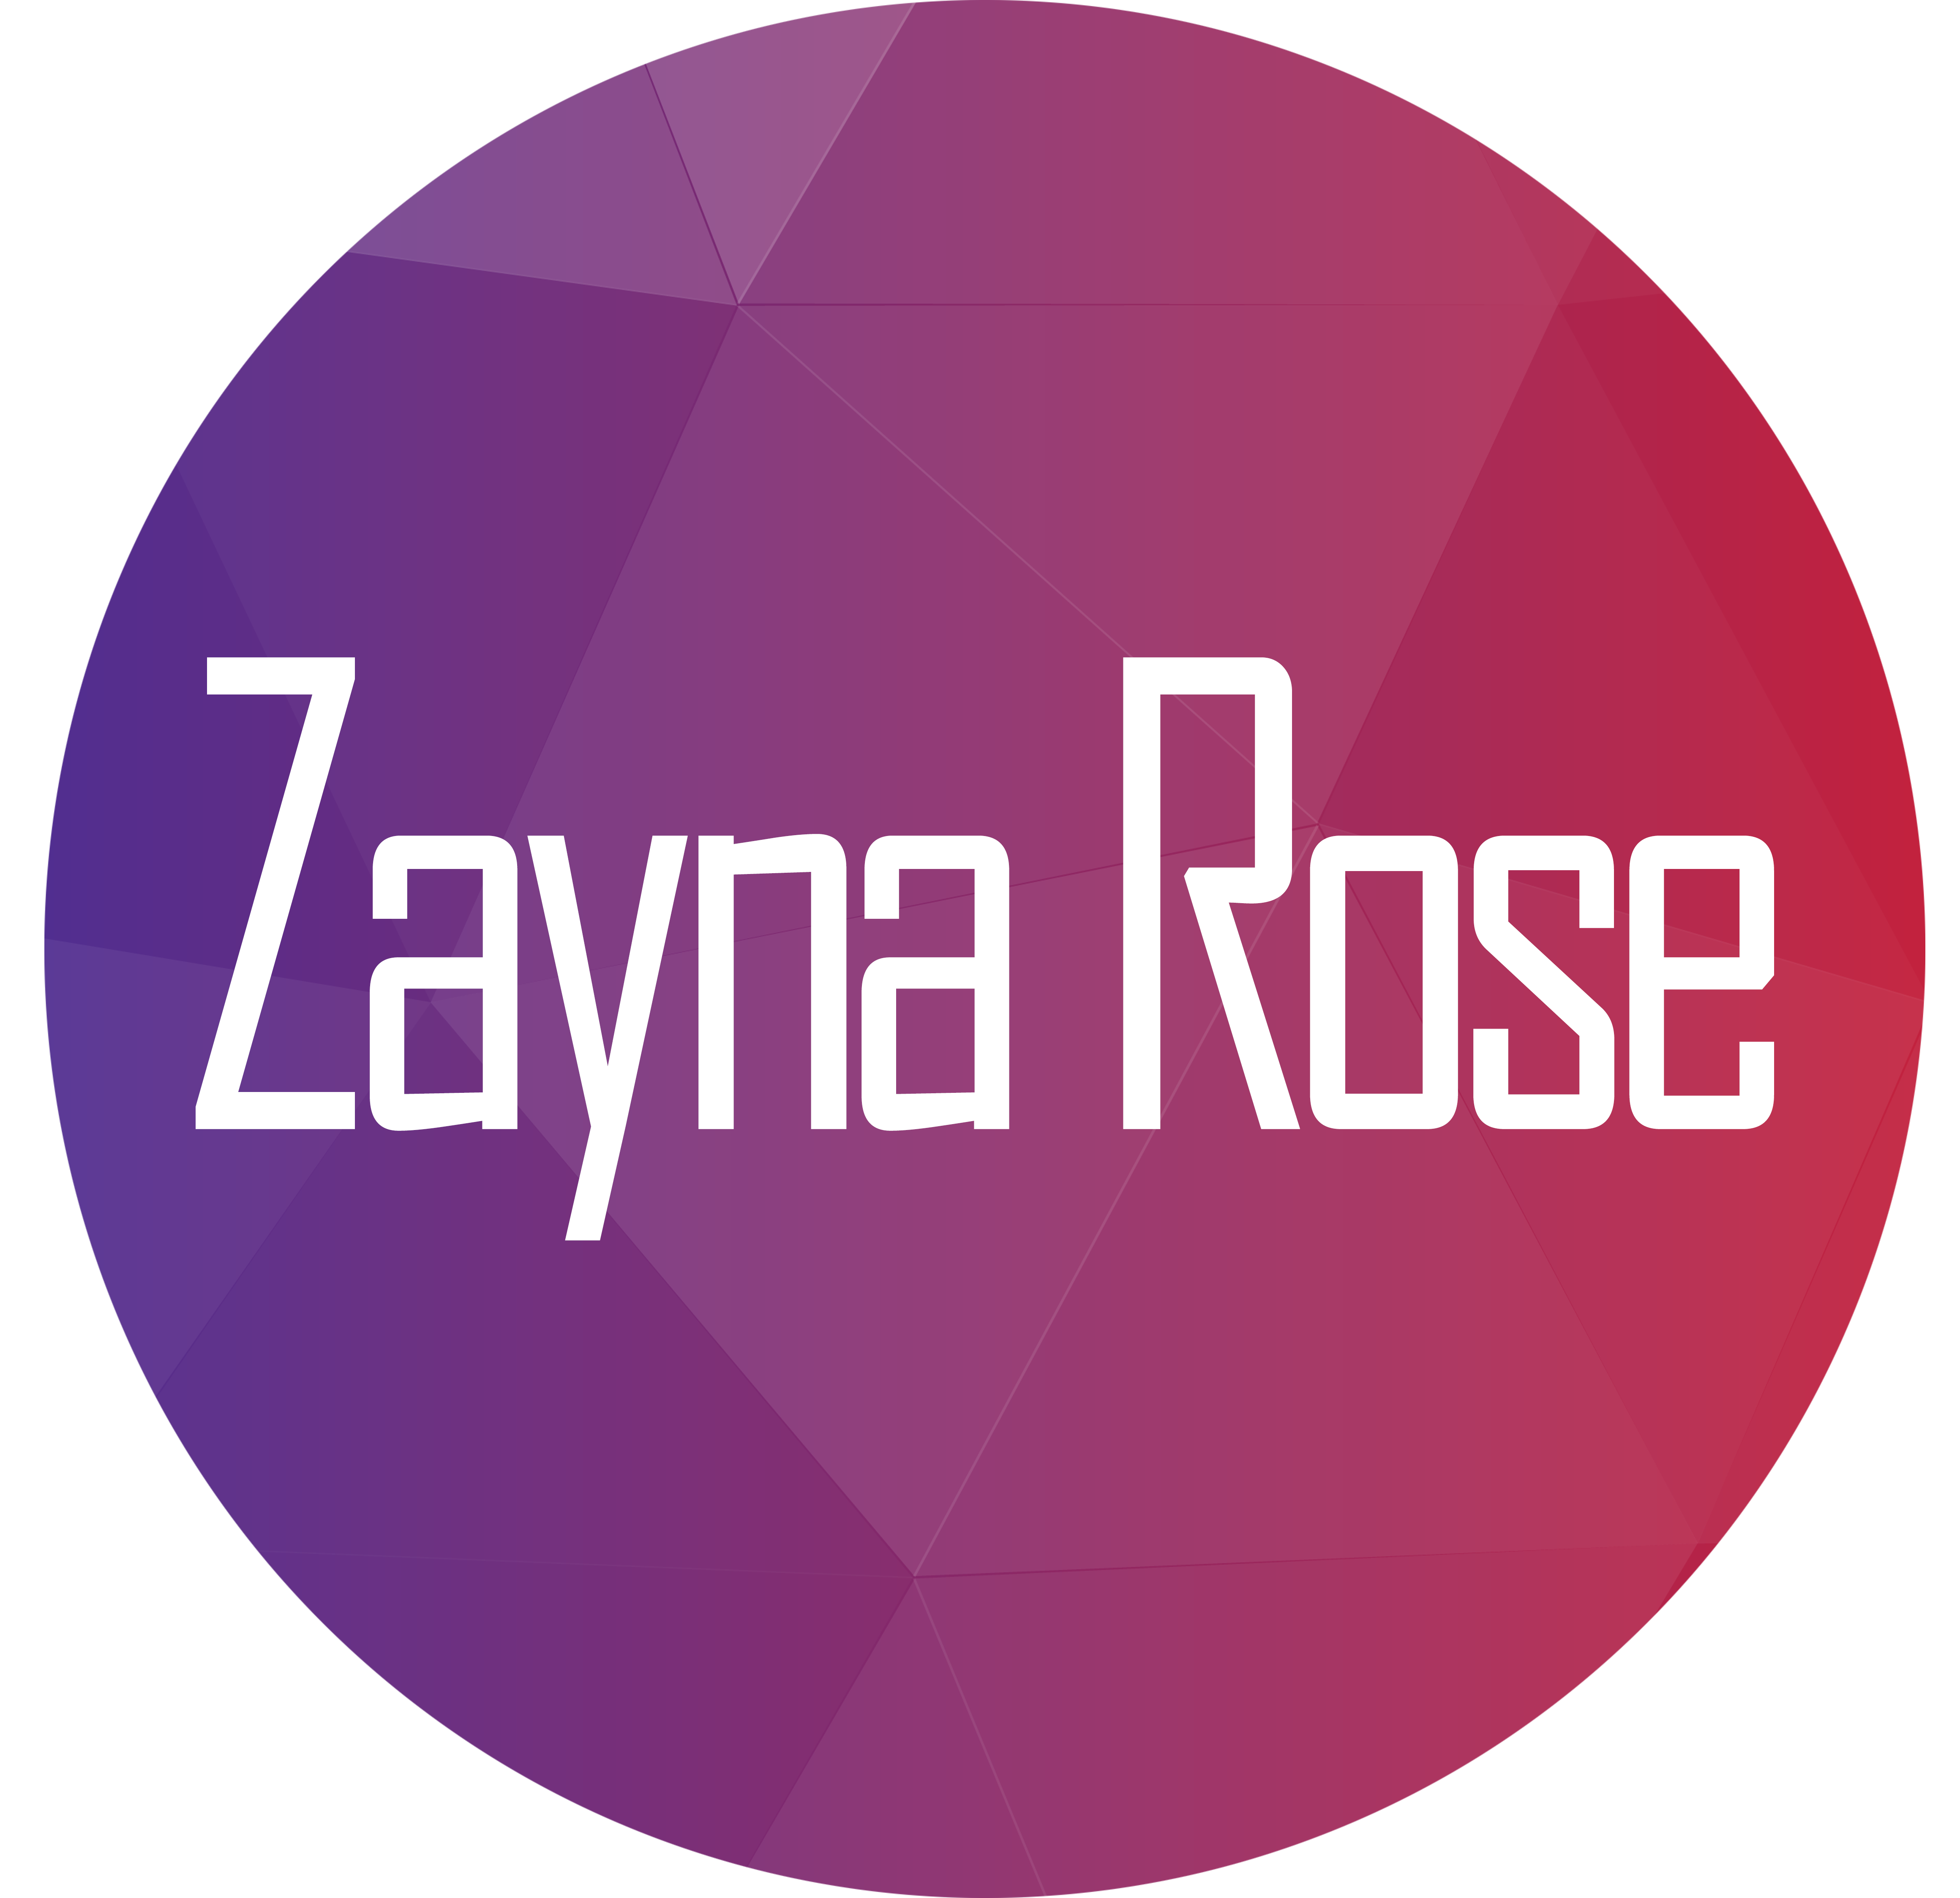 Zayna Rose Image Strategist & Consultant